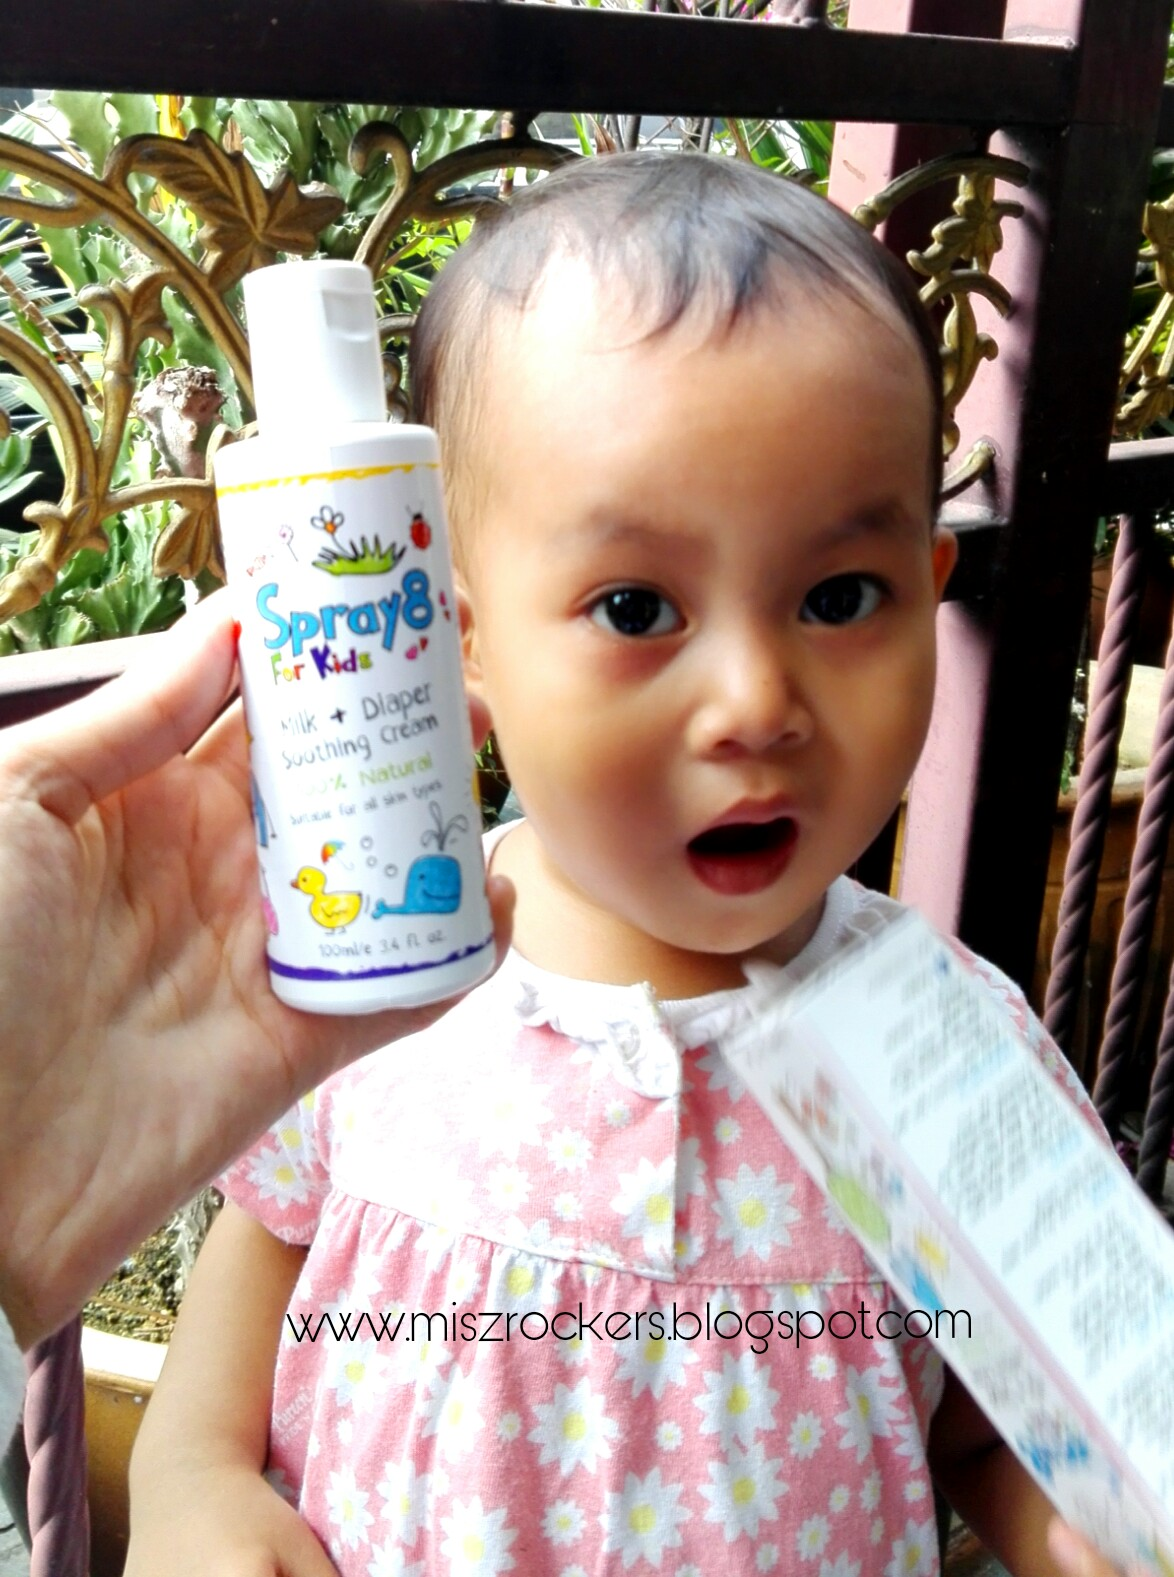 SPRAY 8 MILK DIAPER SOOTHING CREAM